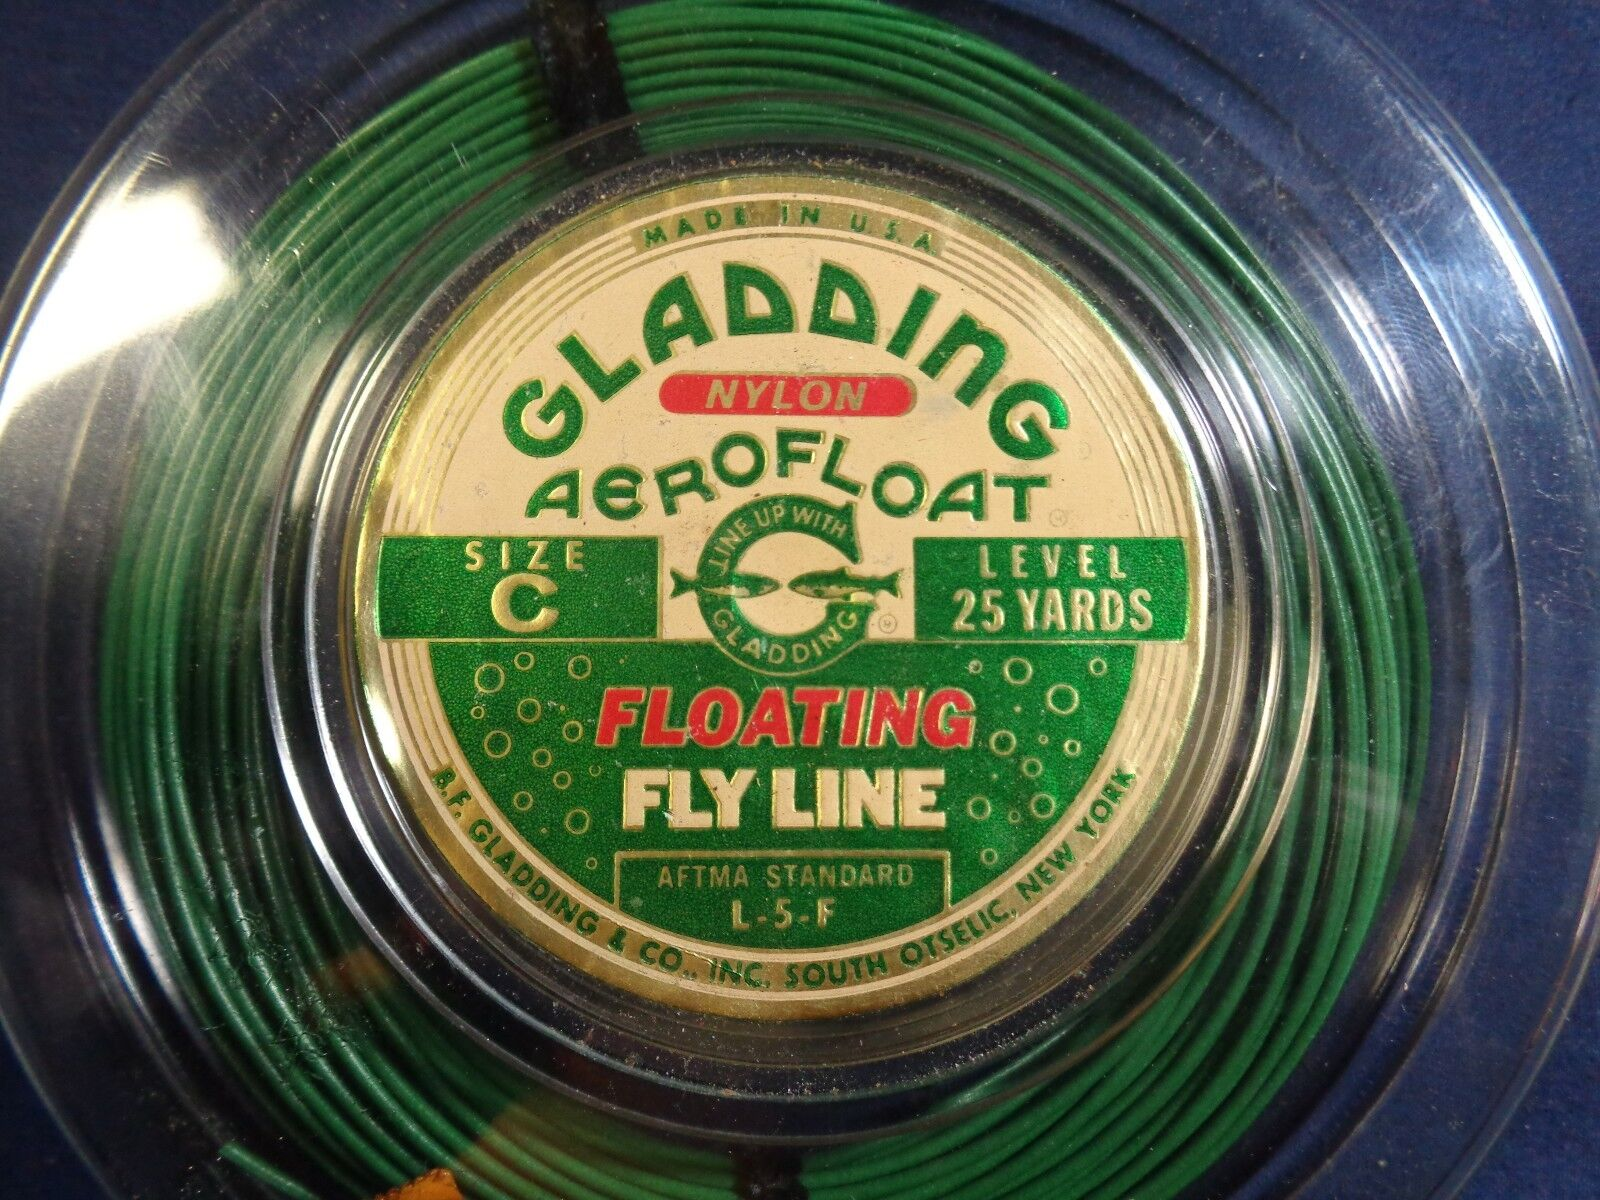 Vintage  Floating Fly Line  GLADDING AEROFLOAT  Size C Green L-5-F  factory outlet store